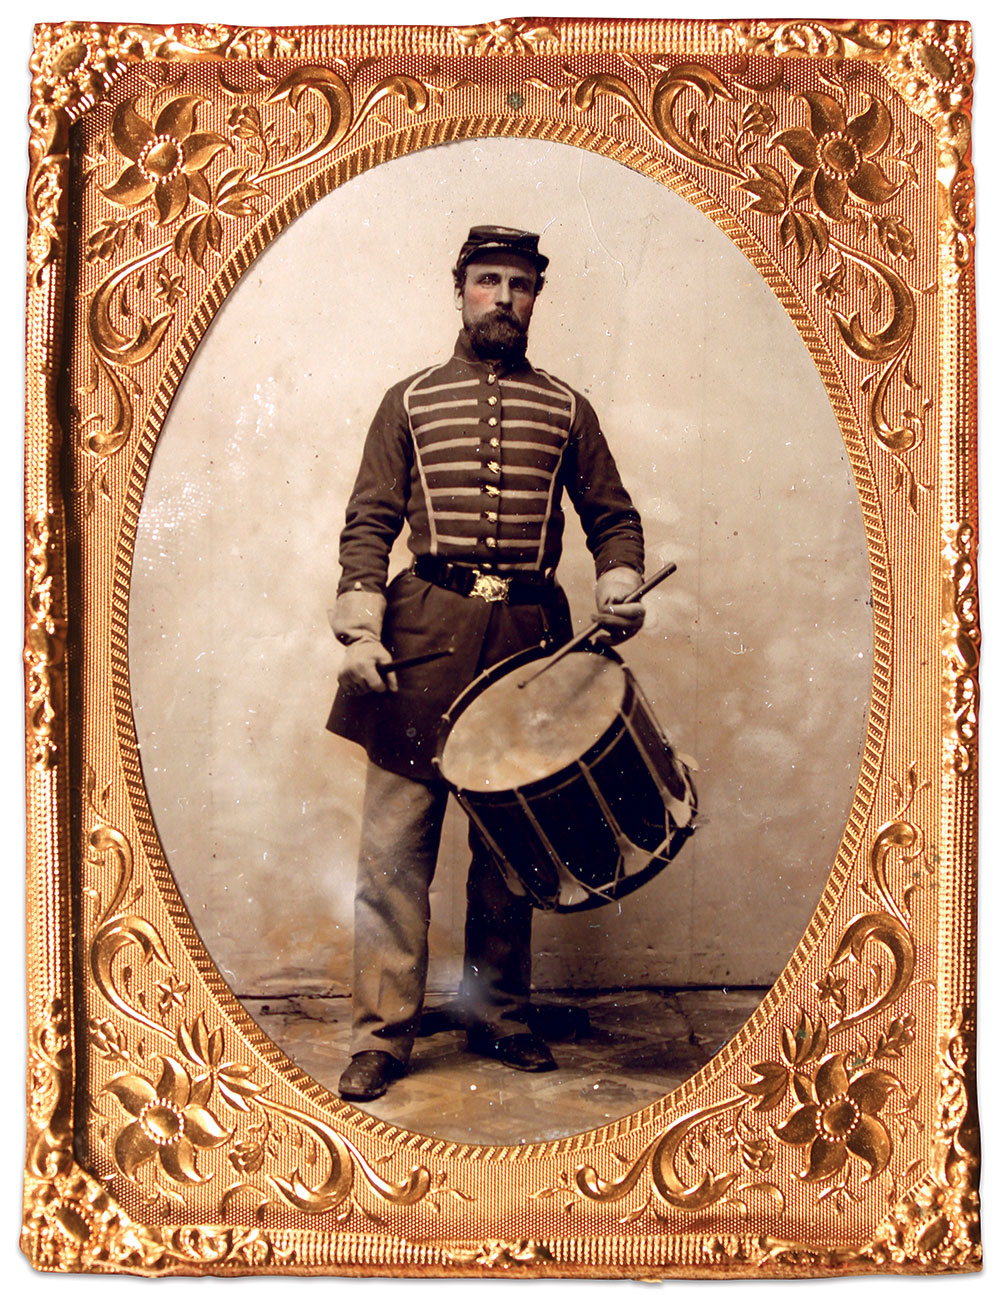 Quarter-plate tintype by an unidentified photographer. Buck Zaidel Collection.